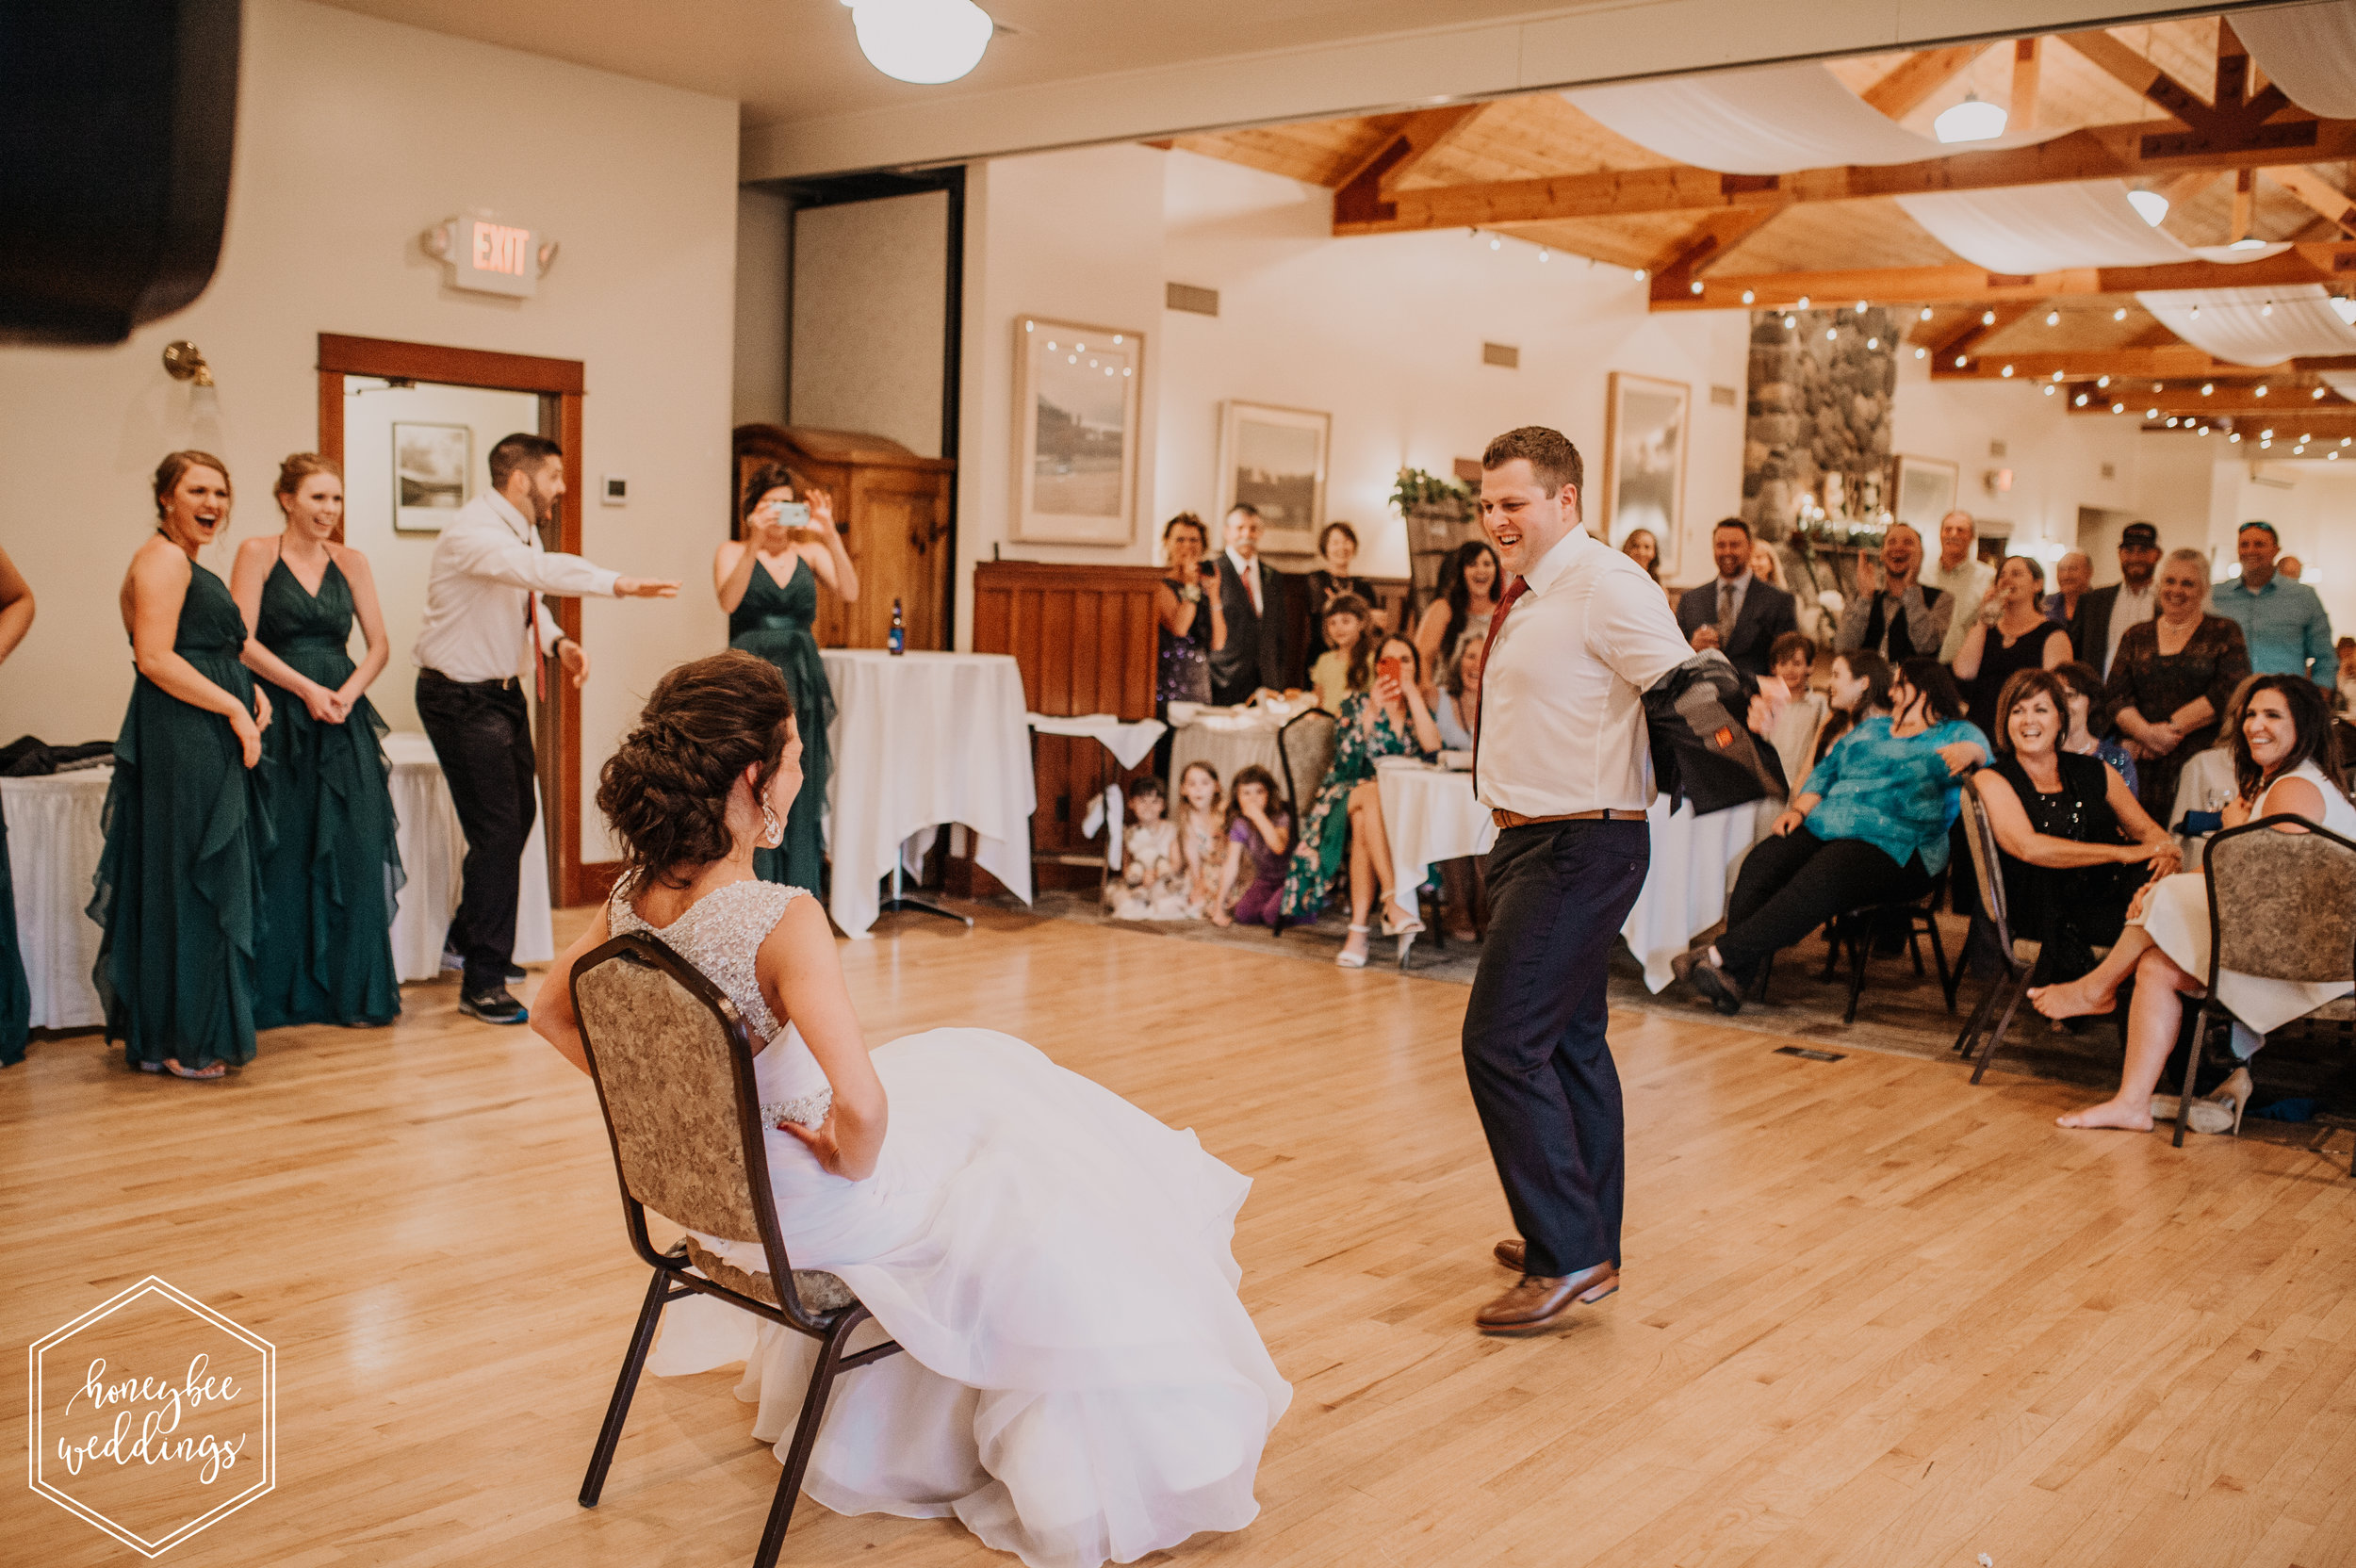 188 Chico Hotsprings Wedding_Bowdino 2018-3897.jpg